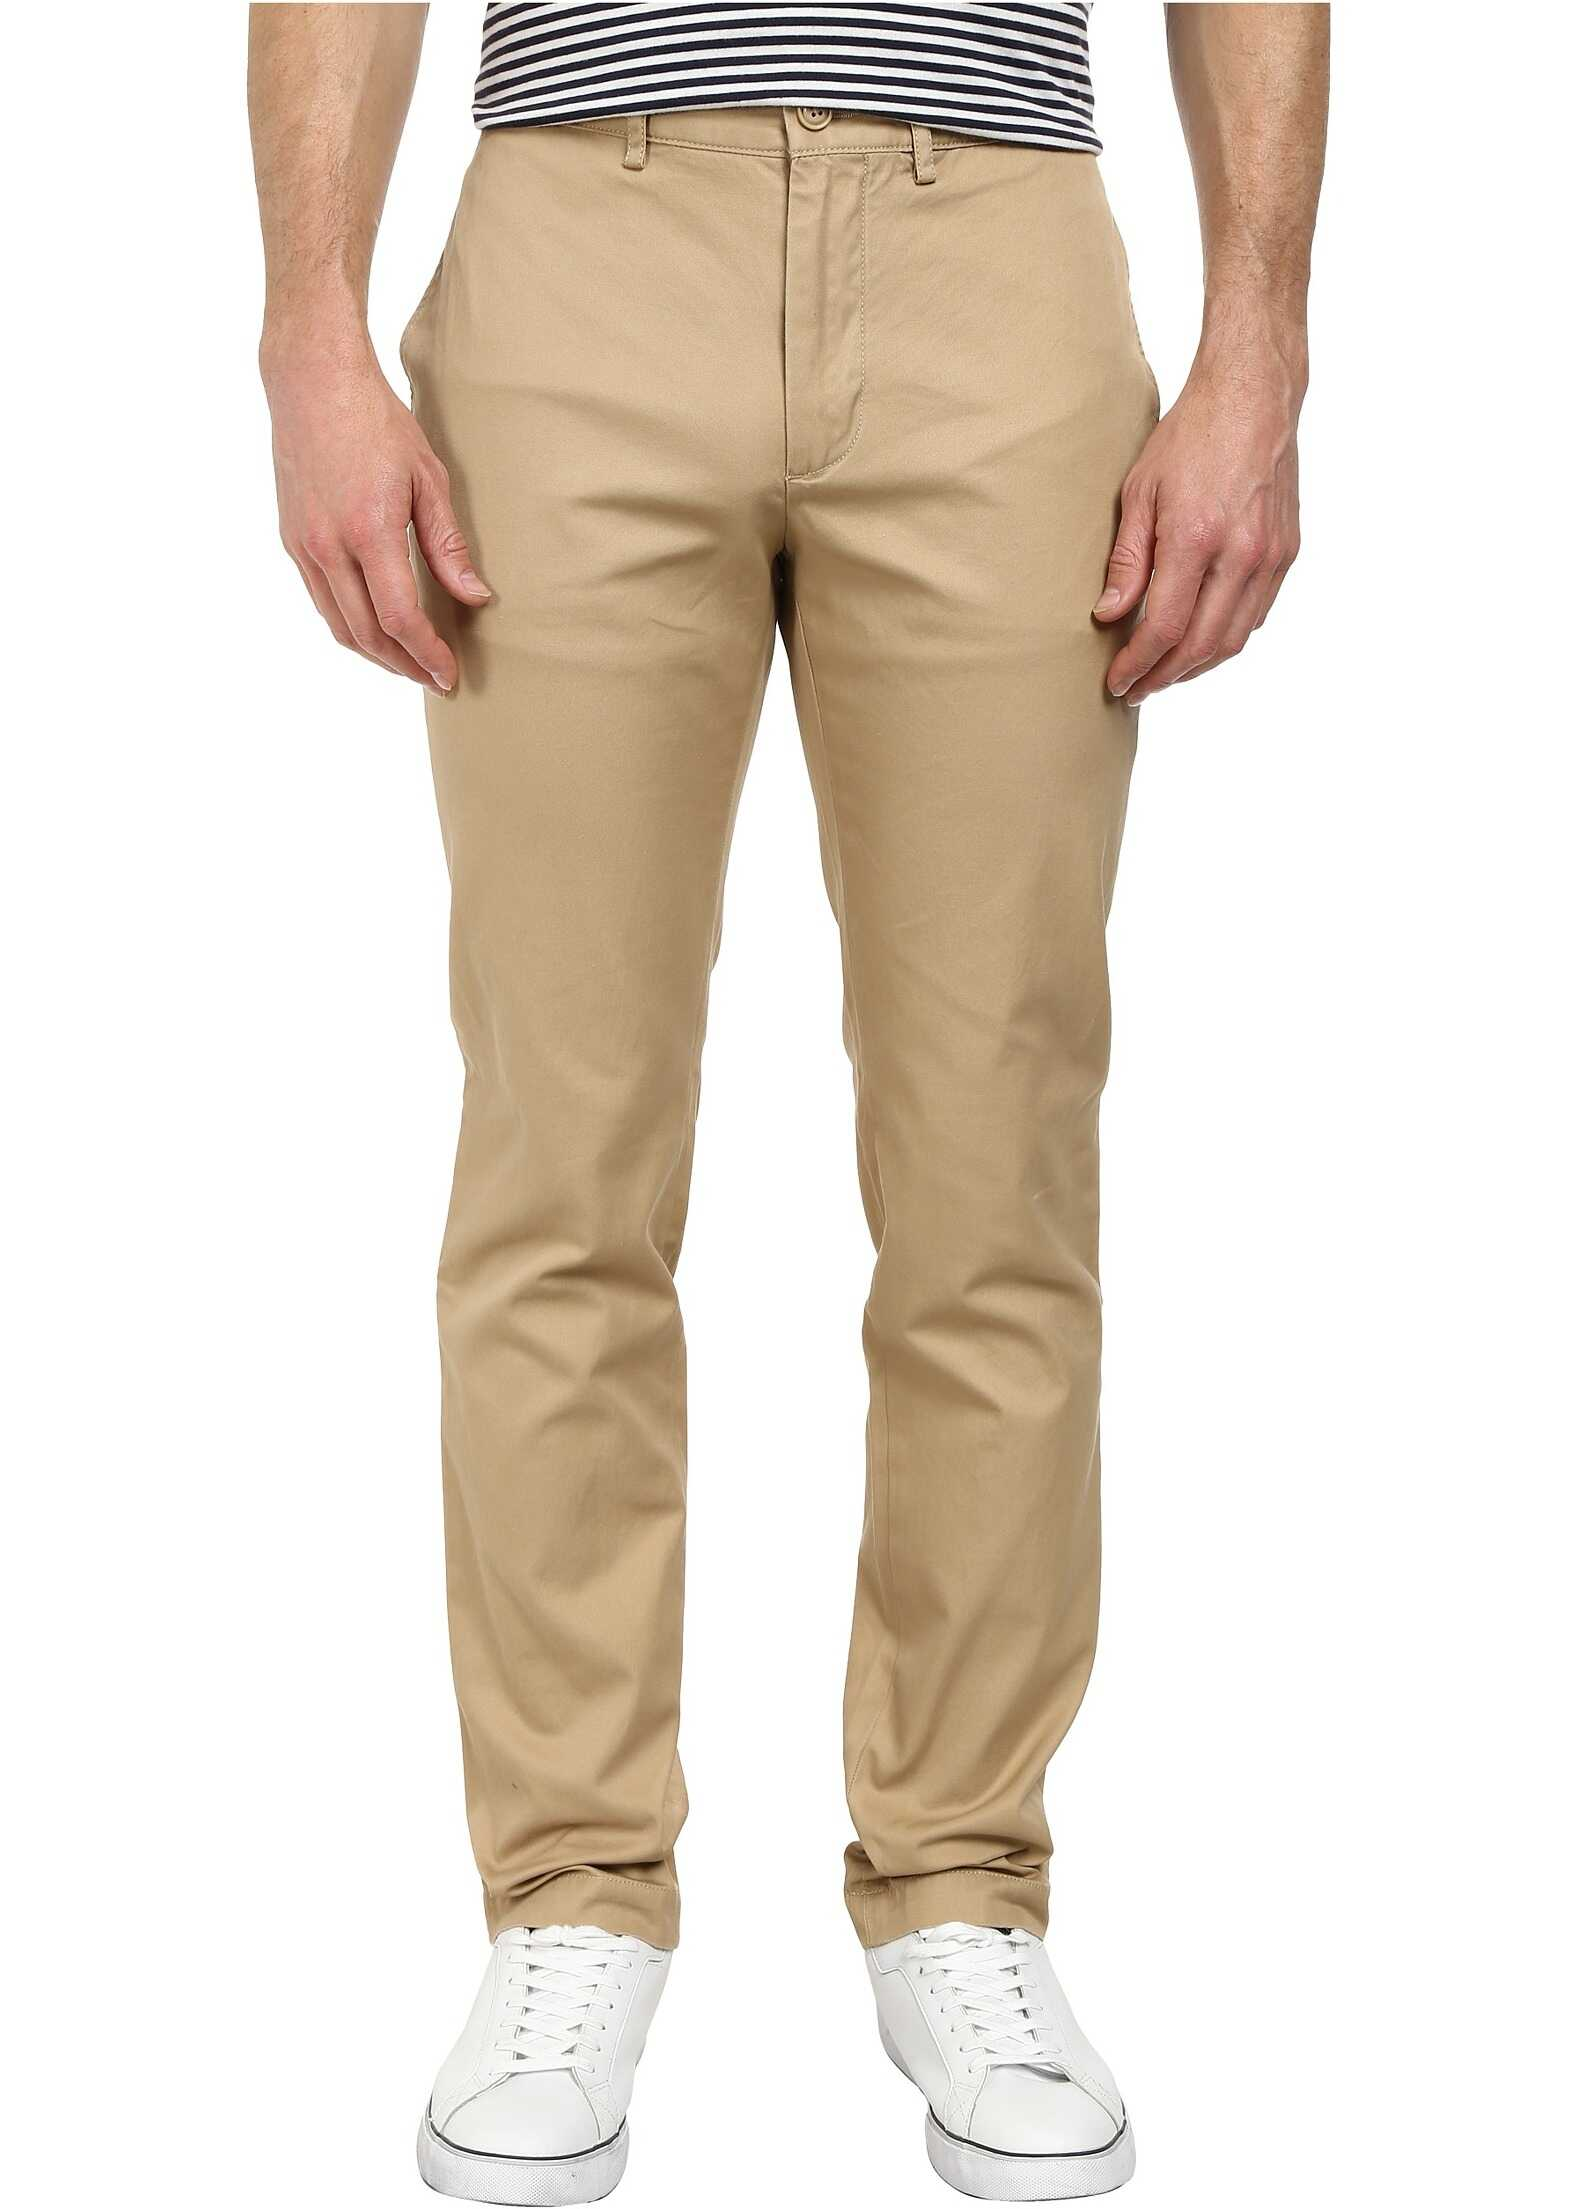 Lacoste Regular Fit Twill Chino* Light Macaroon Brown